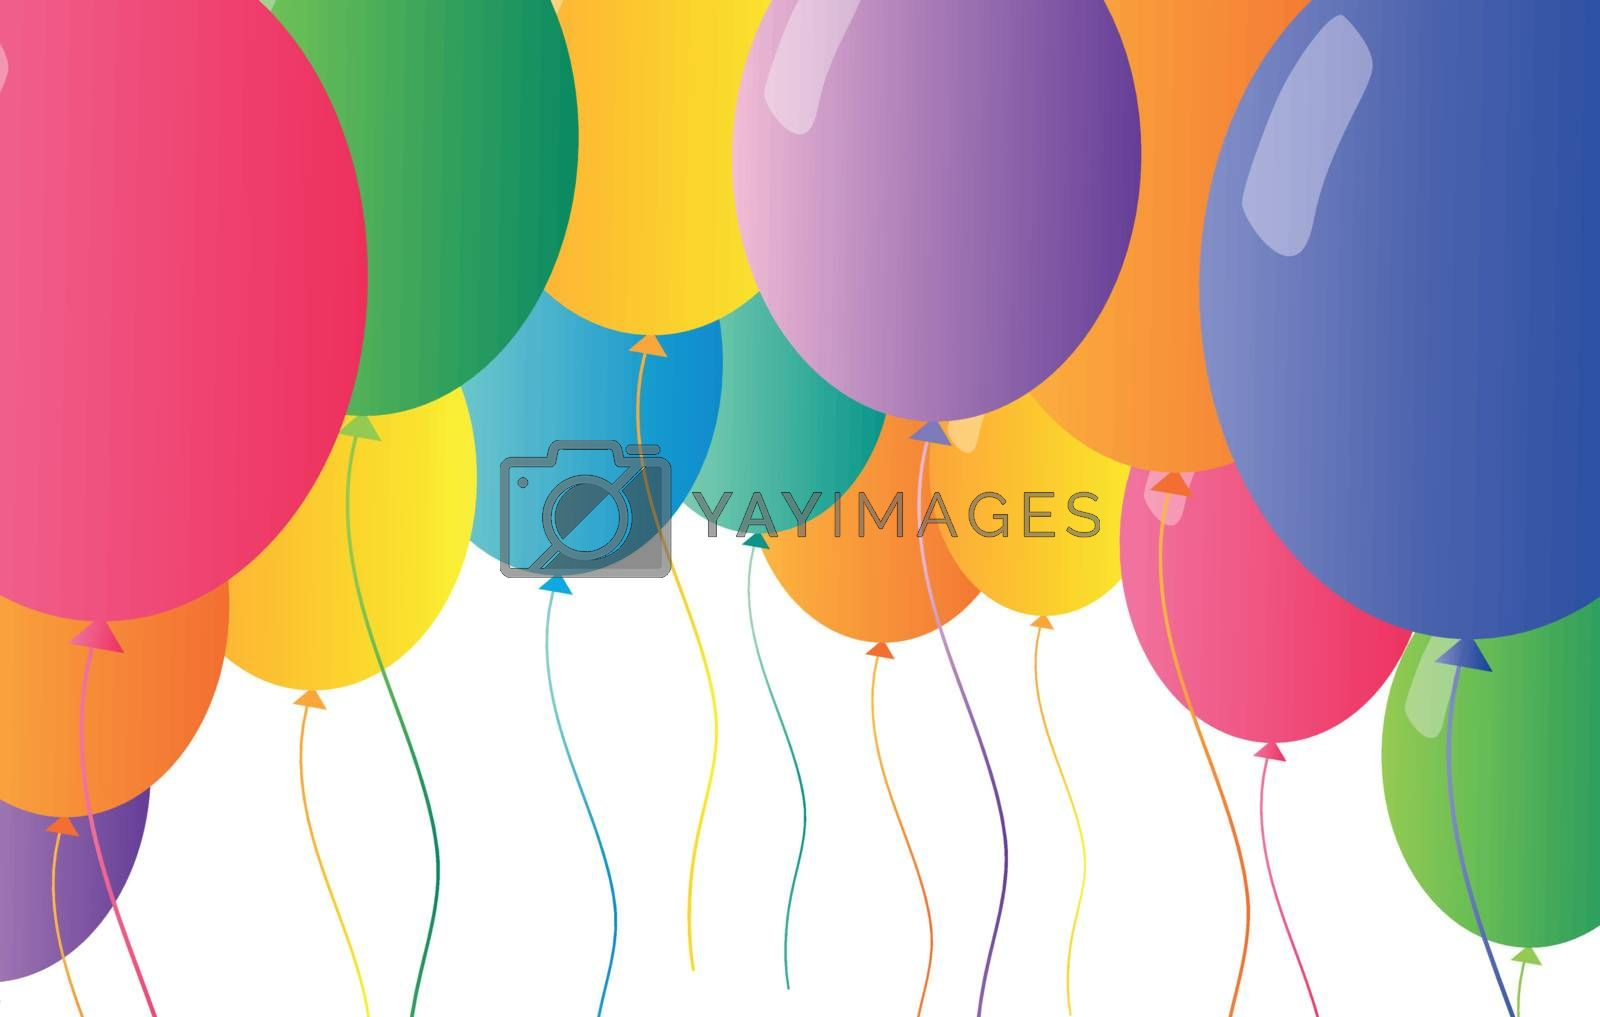 Illustration of the colorful flying balloons on a white background